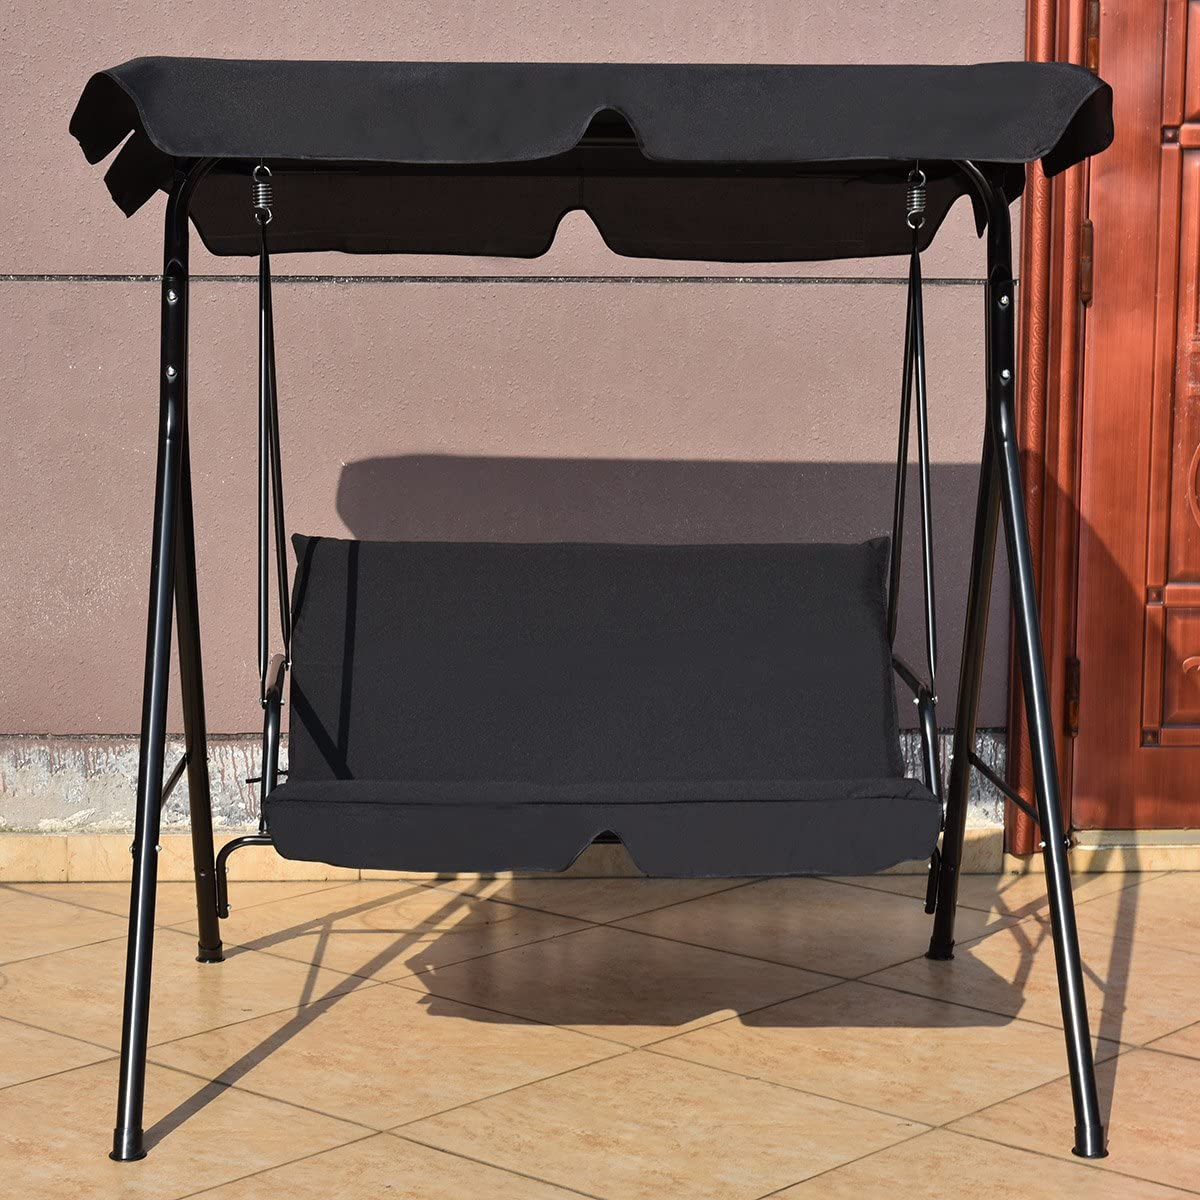 180KG Patio Metal Hammock Swinging Bench Lounger Seat Black Outdoor Indoor Canopy Powder Coated Steel Cushioned Seaters COSTWAY 2 Seaters Garden Swing Chair